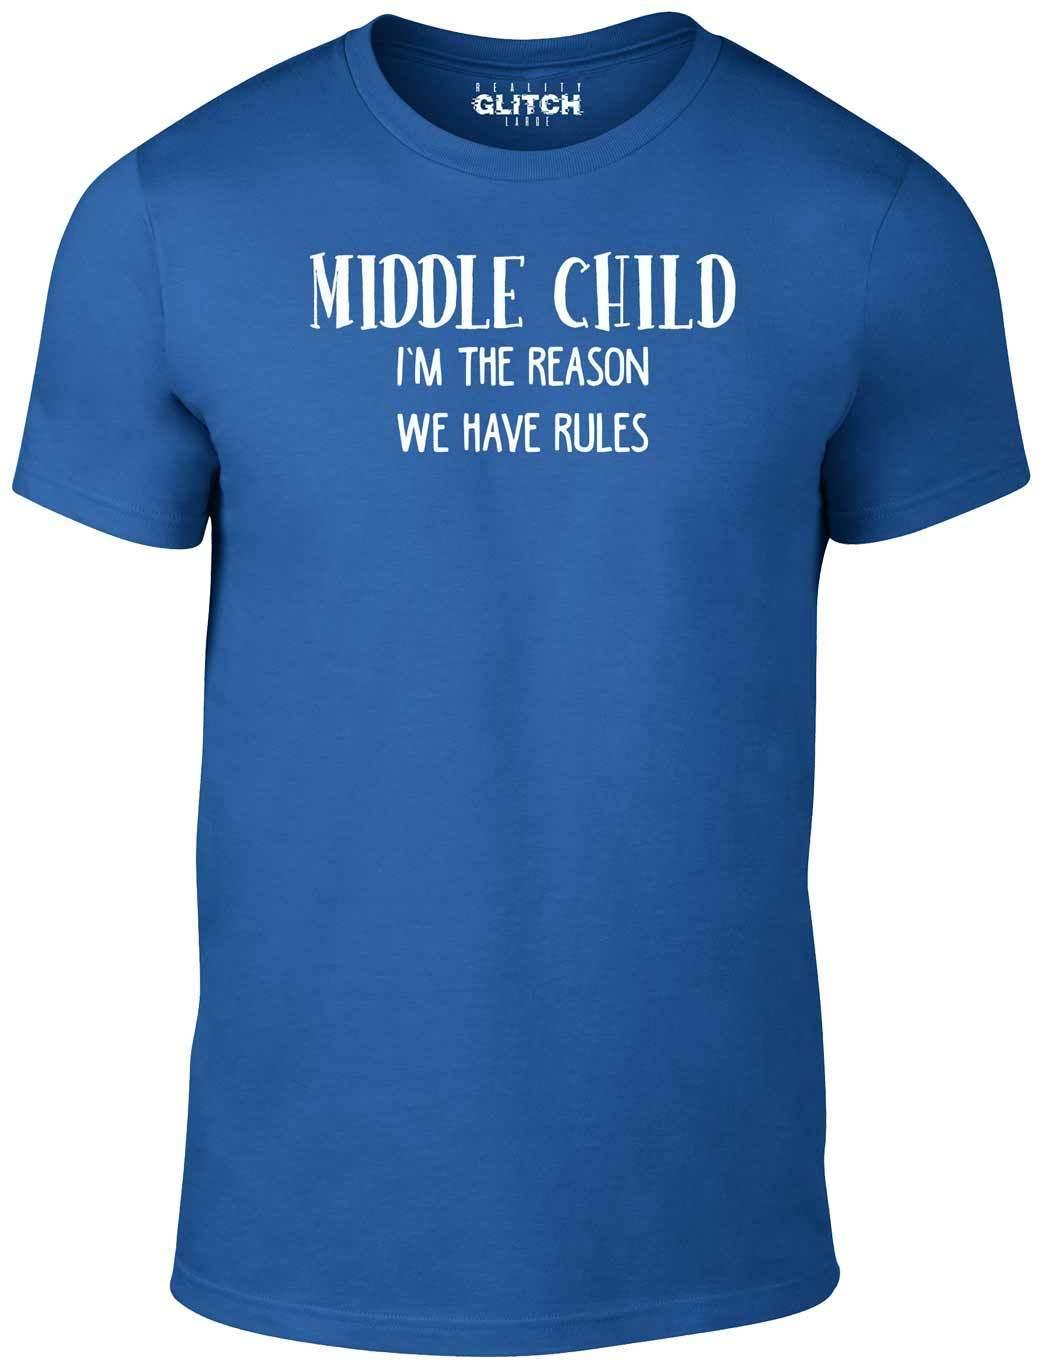 7427cccc7 Kids Middle Child T Shirt Funny Childrens T Shirt Family Rules Brother  Sister Funny Ts T Shirts Buy From Shop4ever, $11.01| DHgate.Com